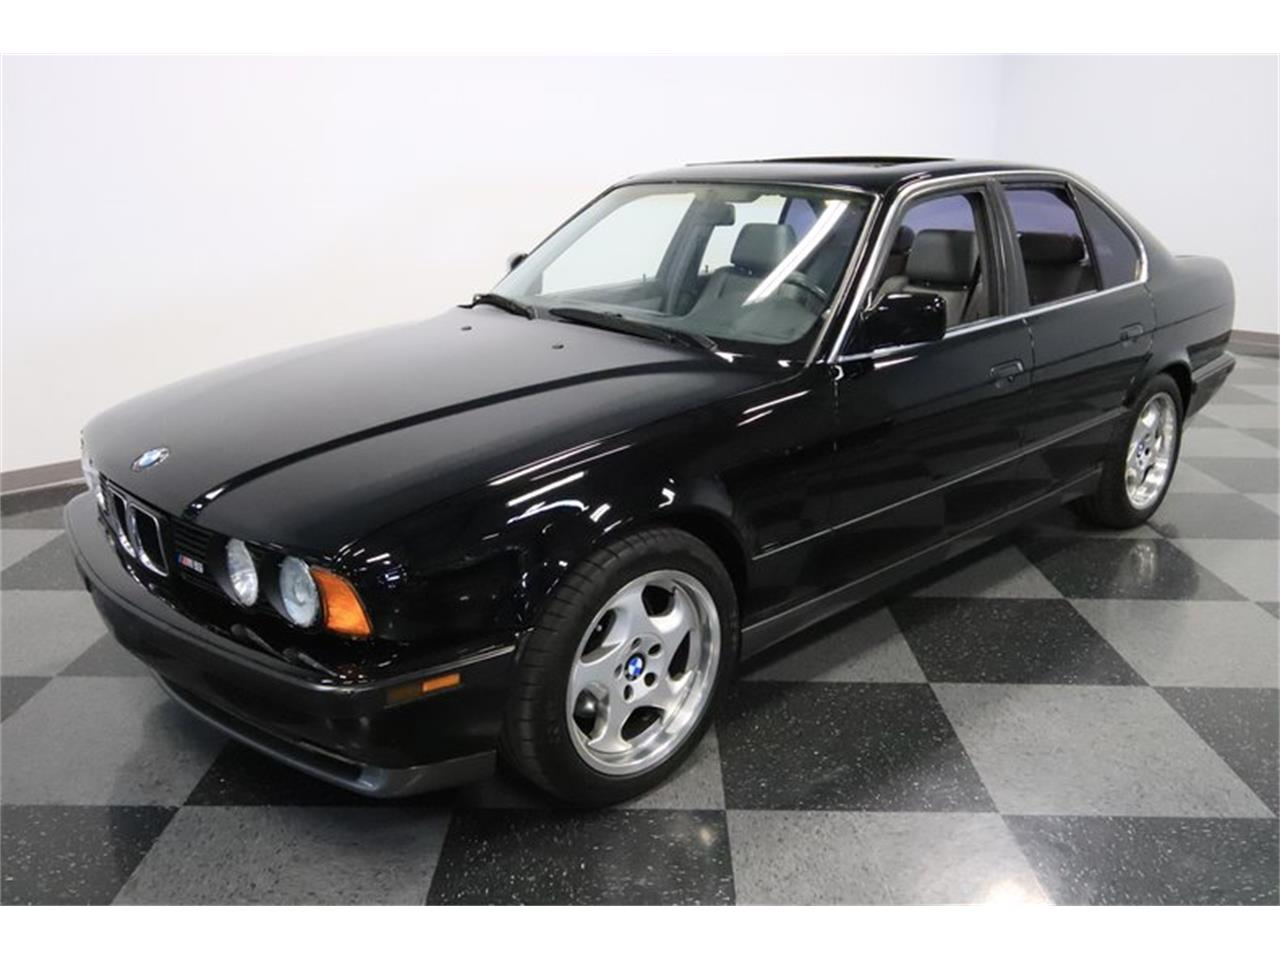 Large Picture of '91 M5 located in Arizona - $31,995.00 Offered by Streetside Classics - Phoenix - PUPZ